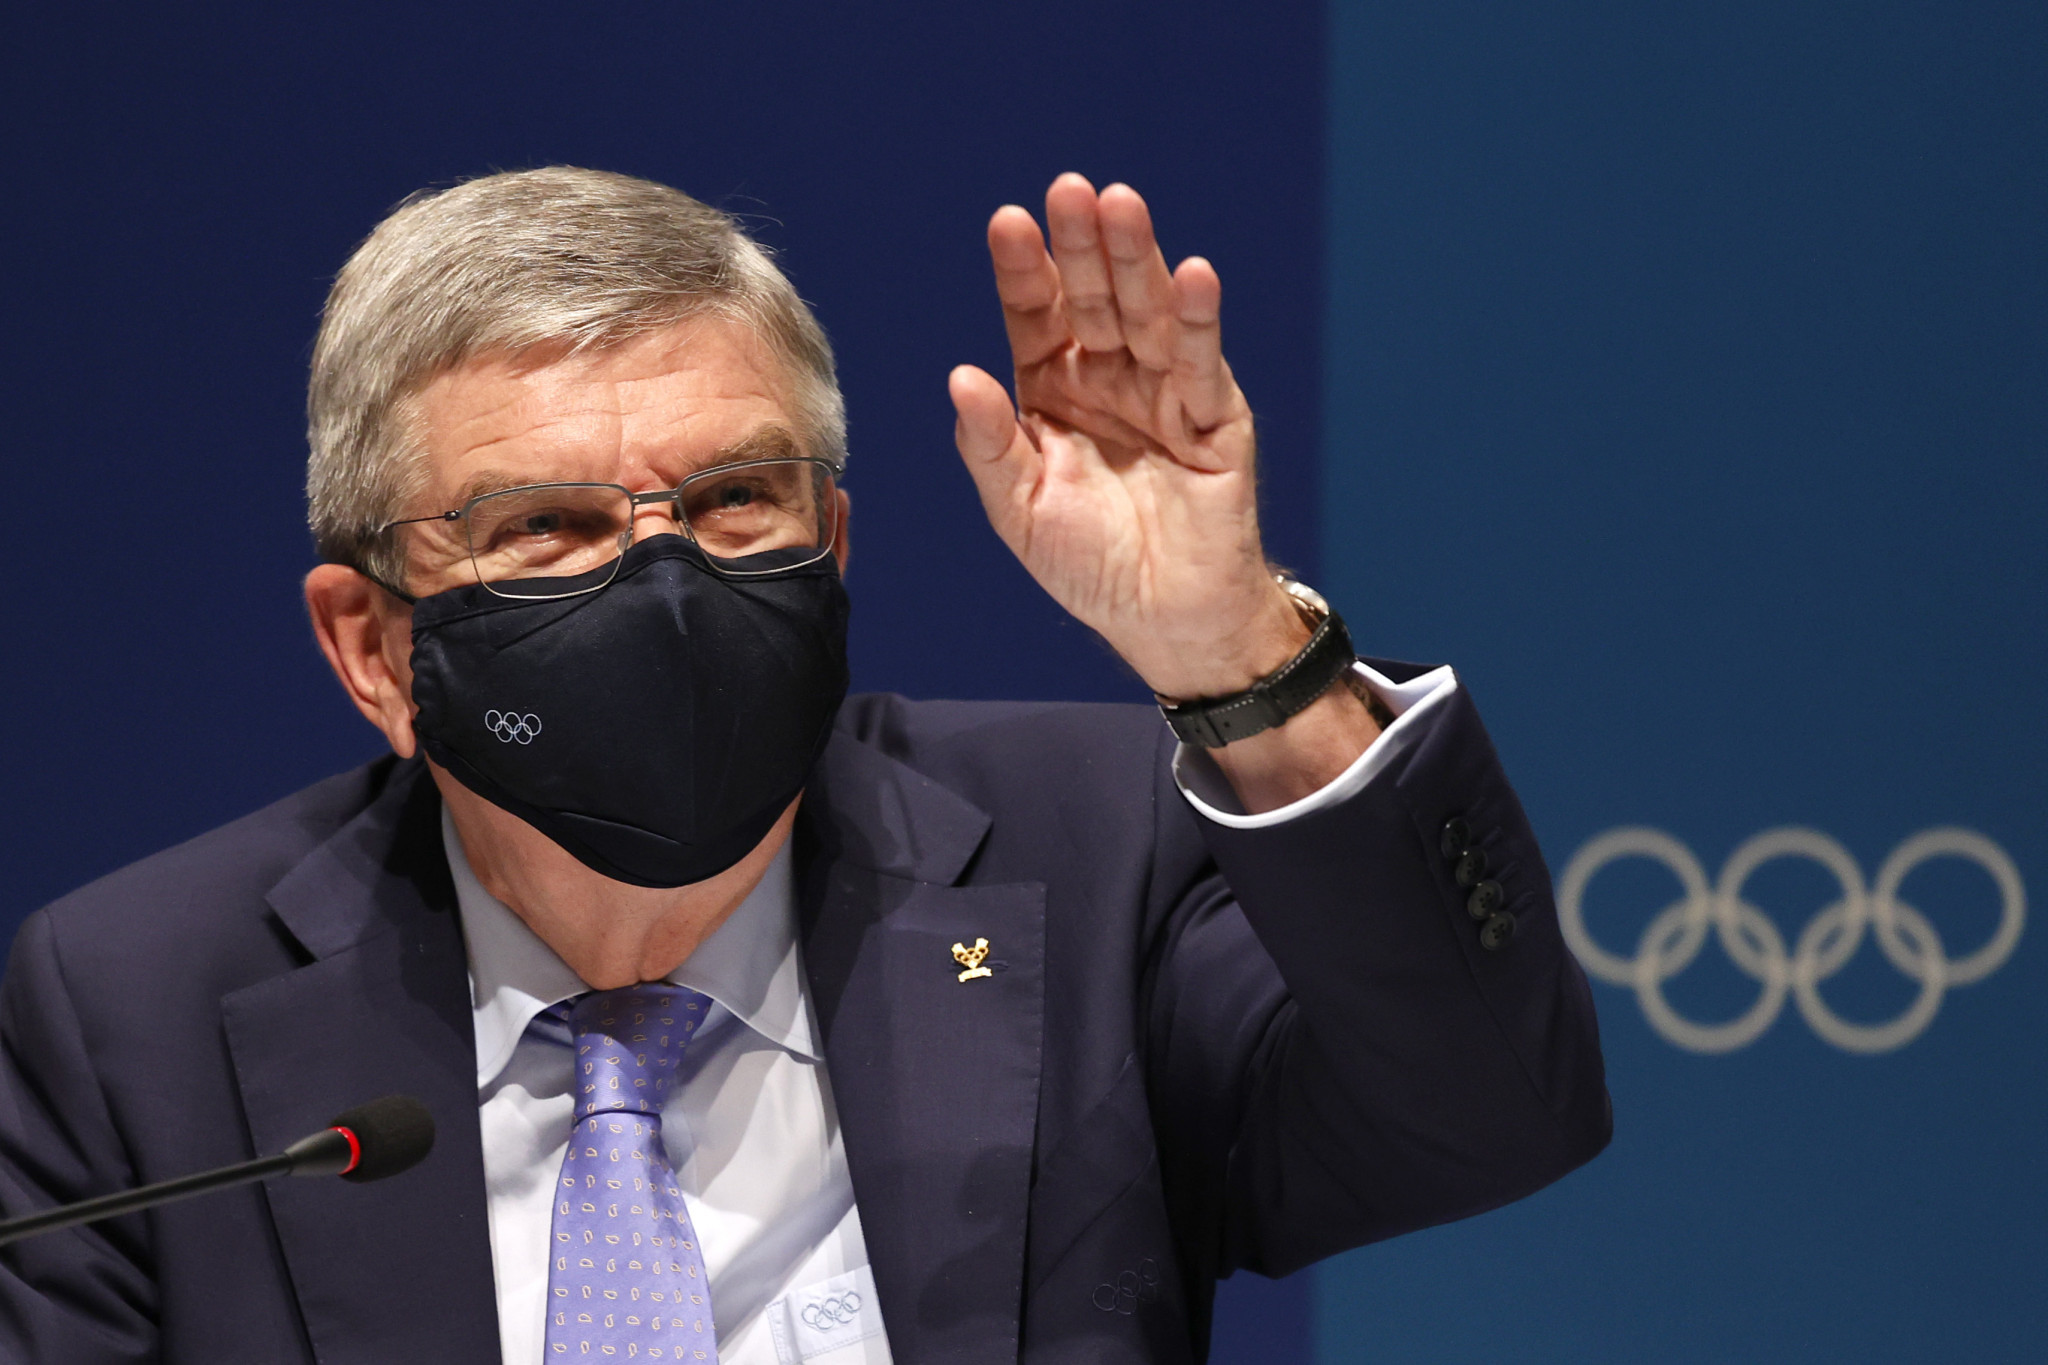 IOC President Thomas Bach has reportedly said there is